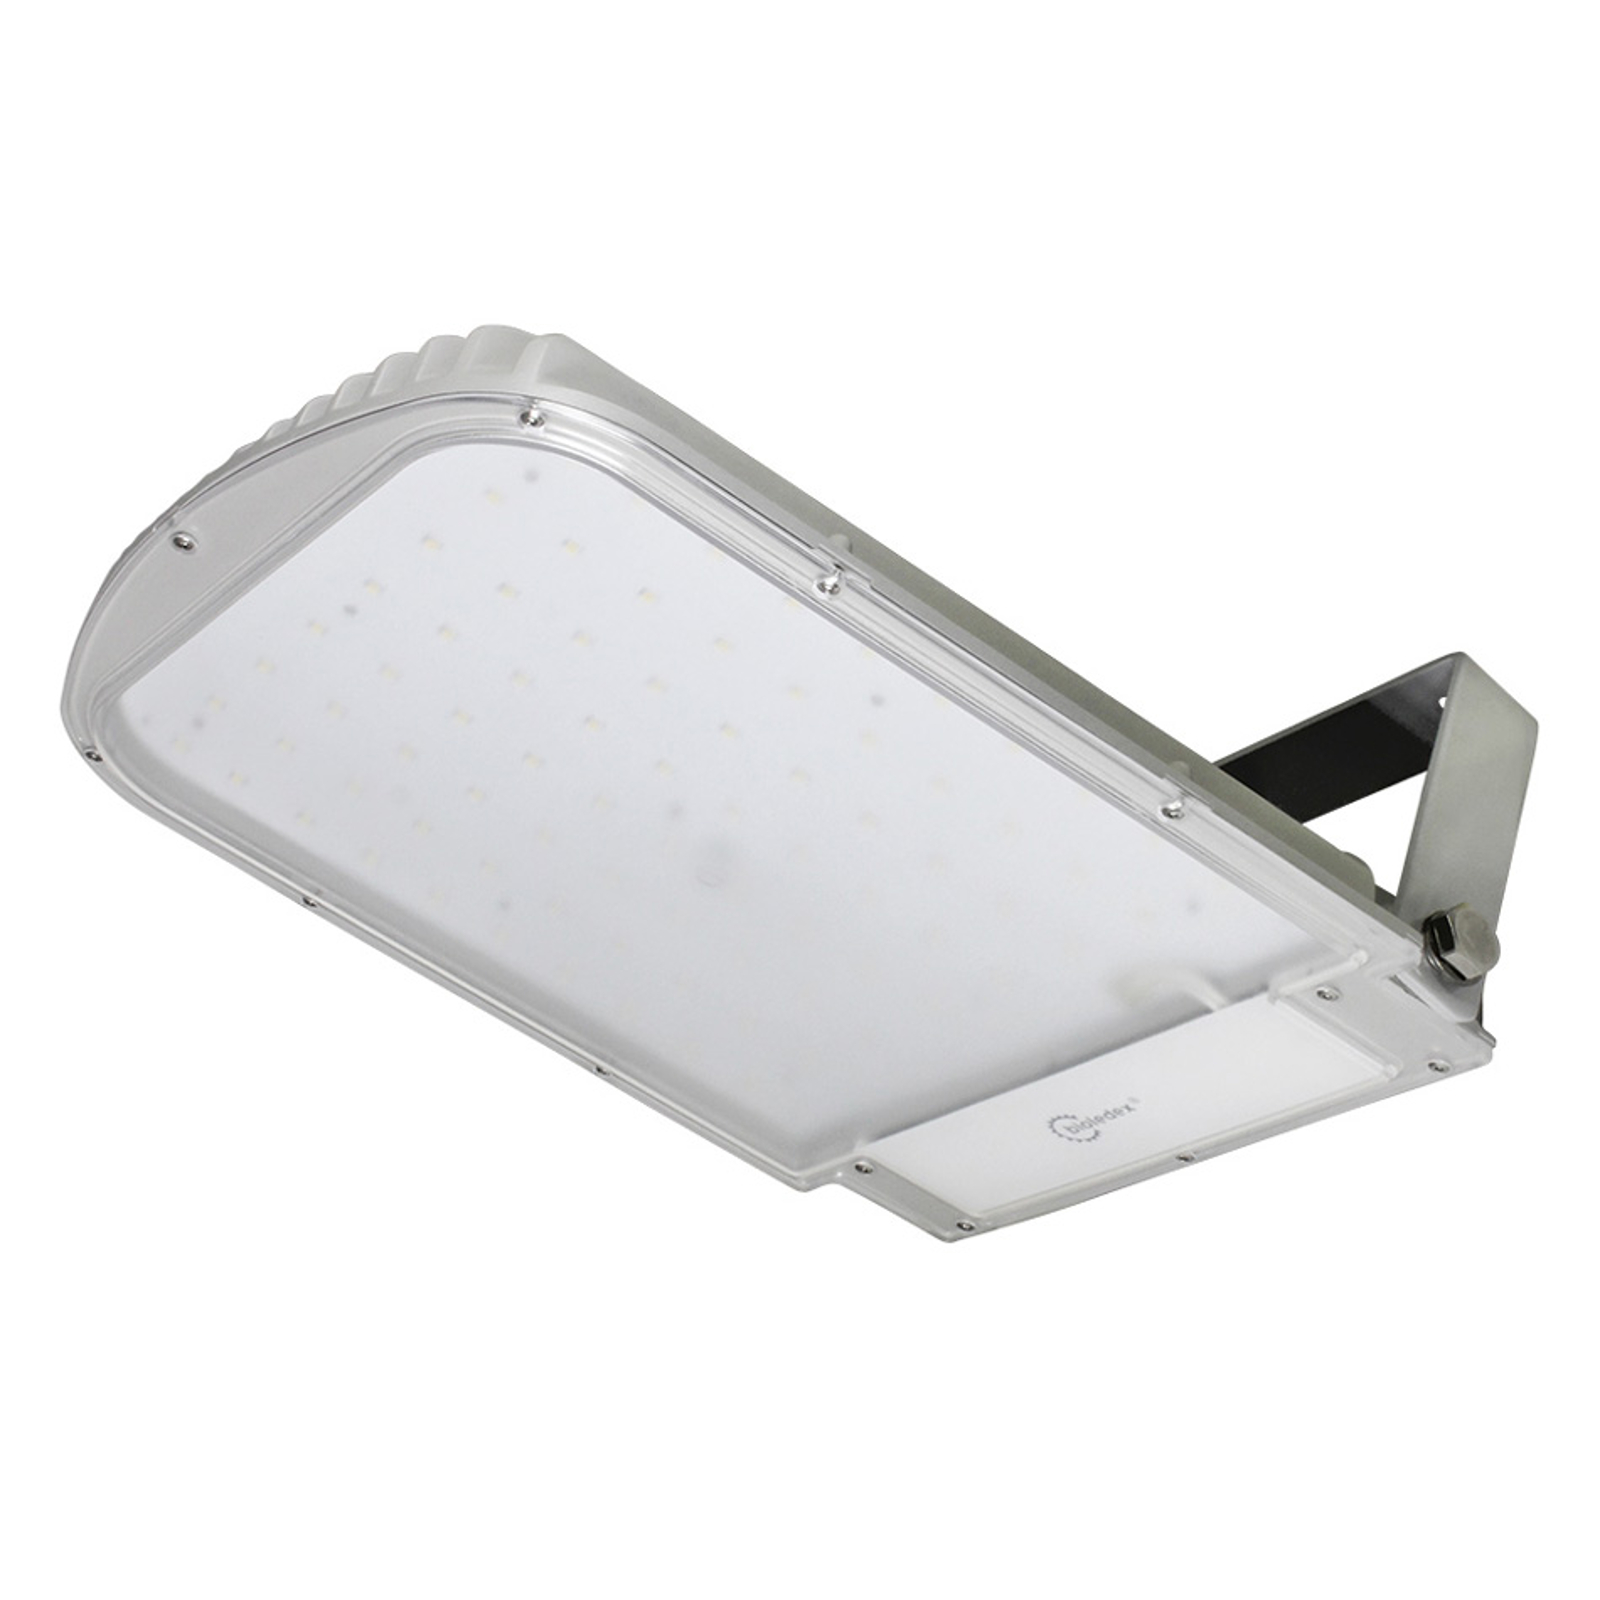 LED spot Astir 70W 120° warmwit 3.000K